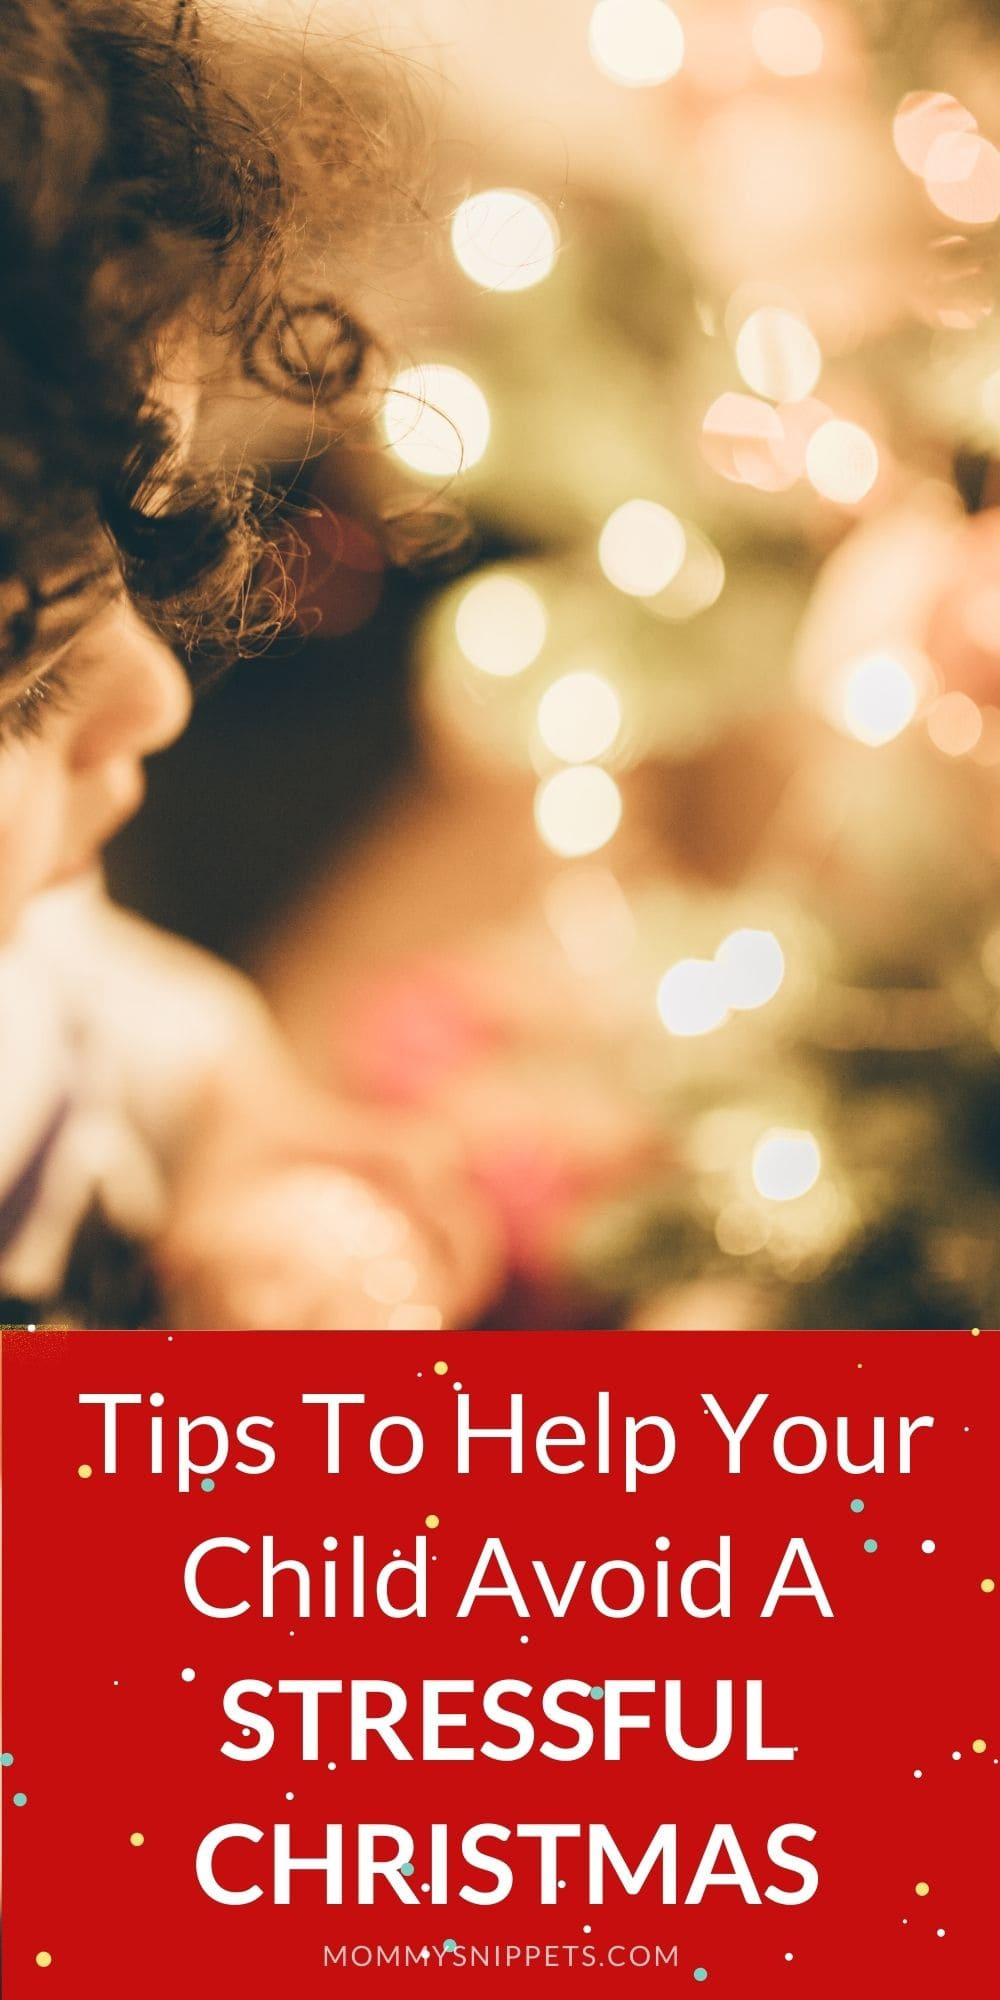 Tips to help your child avoid a stressful Christmas -MommySnippets.com